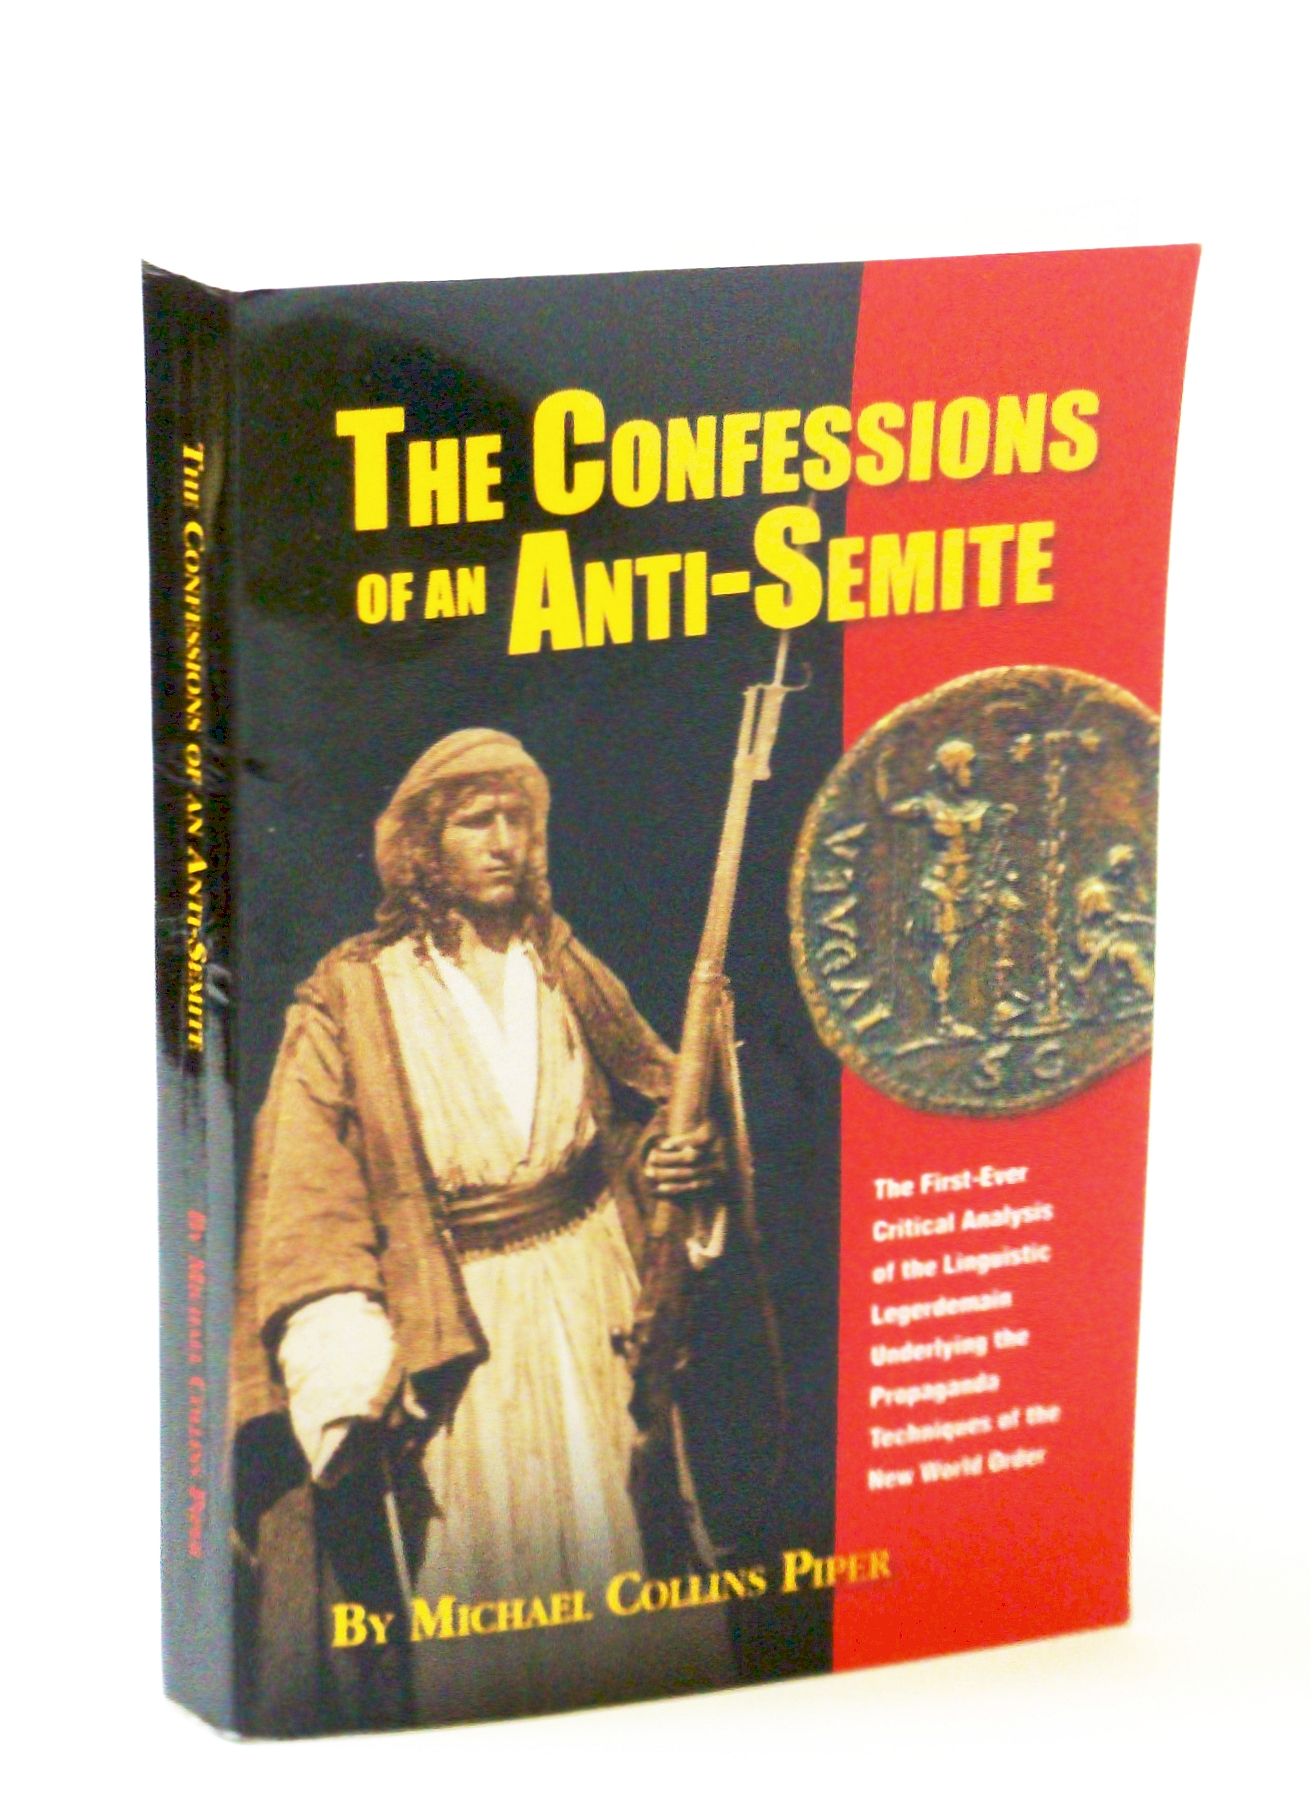 Image for The Confessions of an Anti-Semite